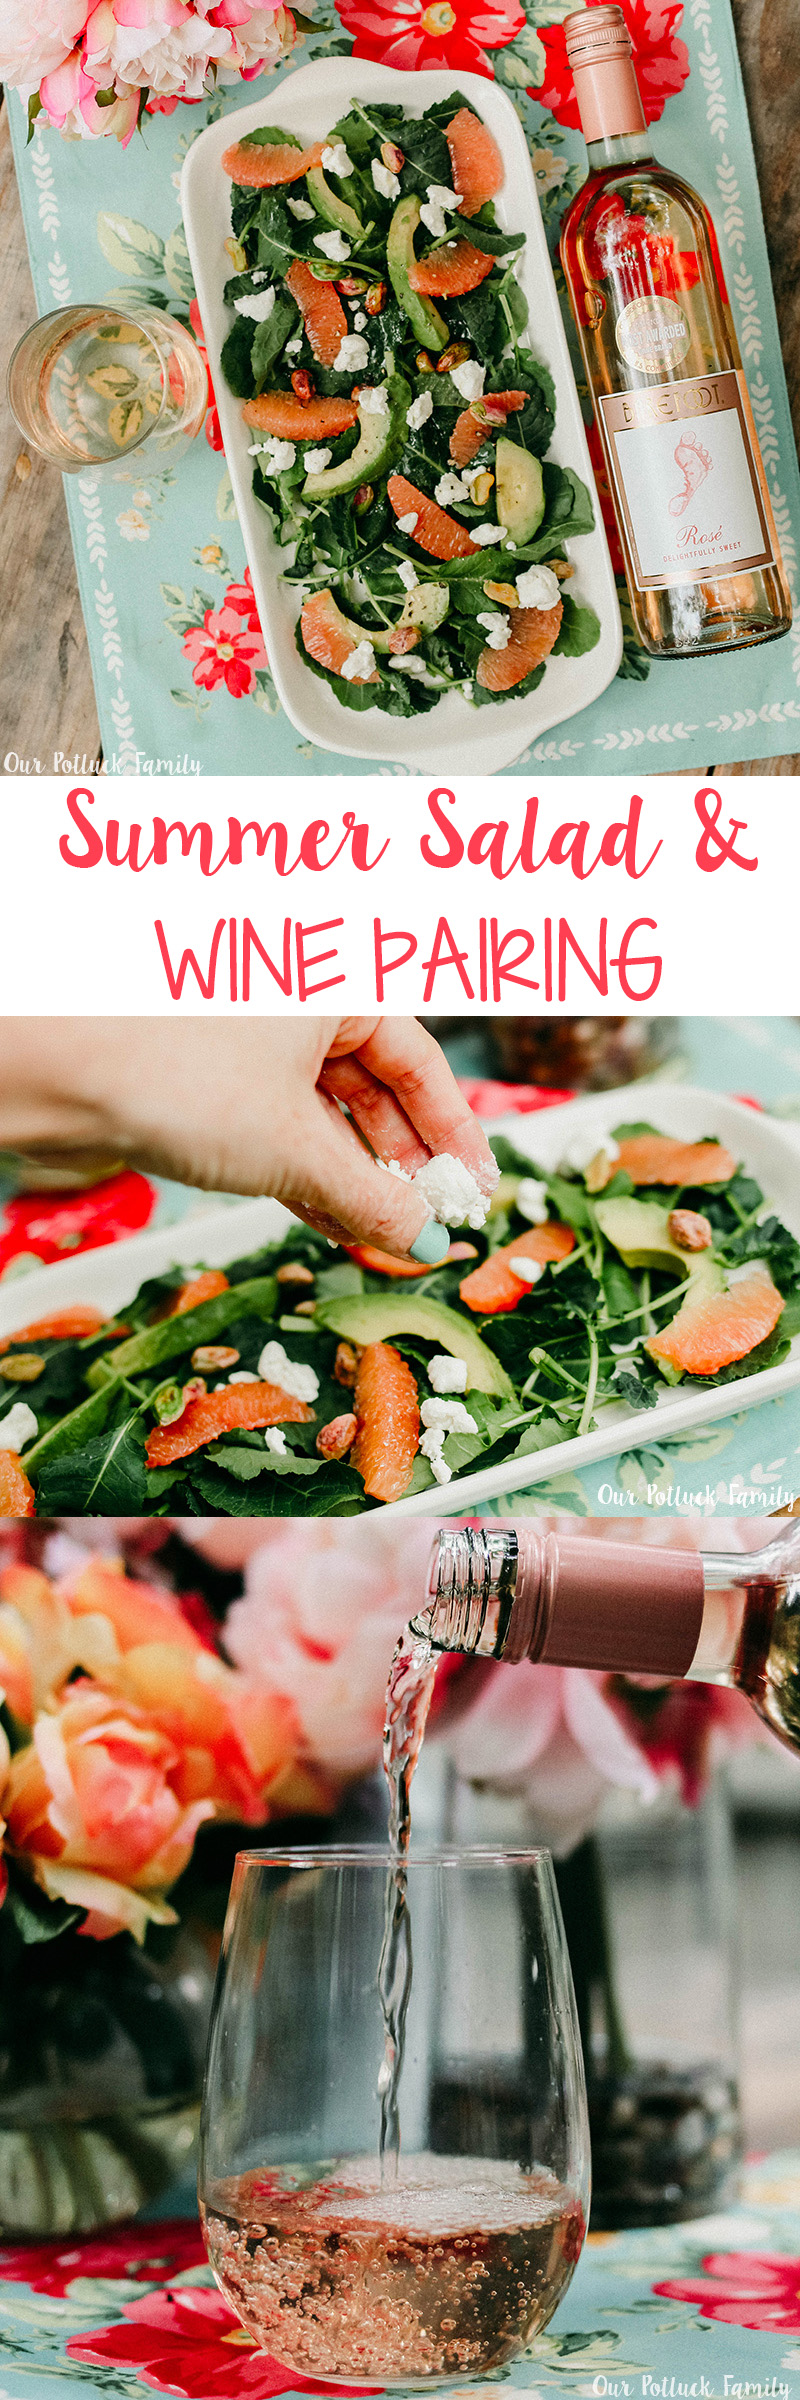 Summer Salad and Rosé Pairing